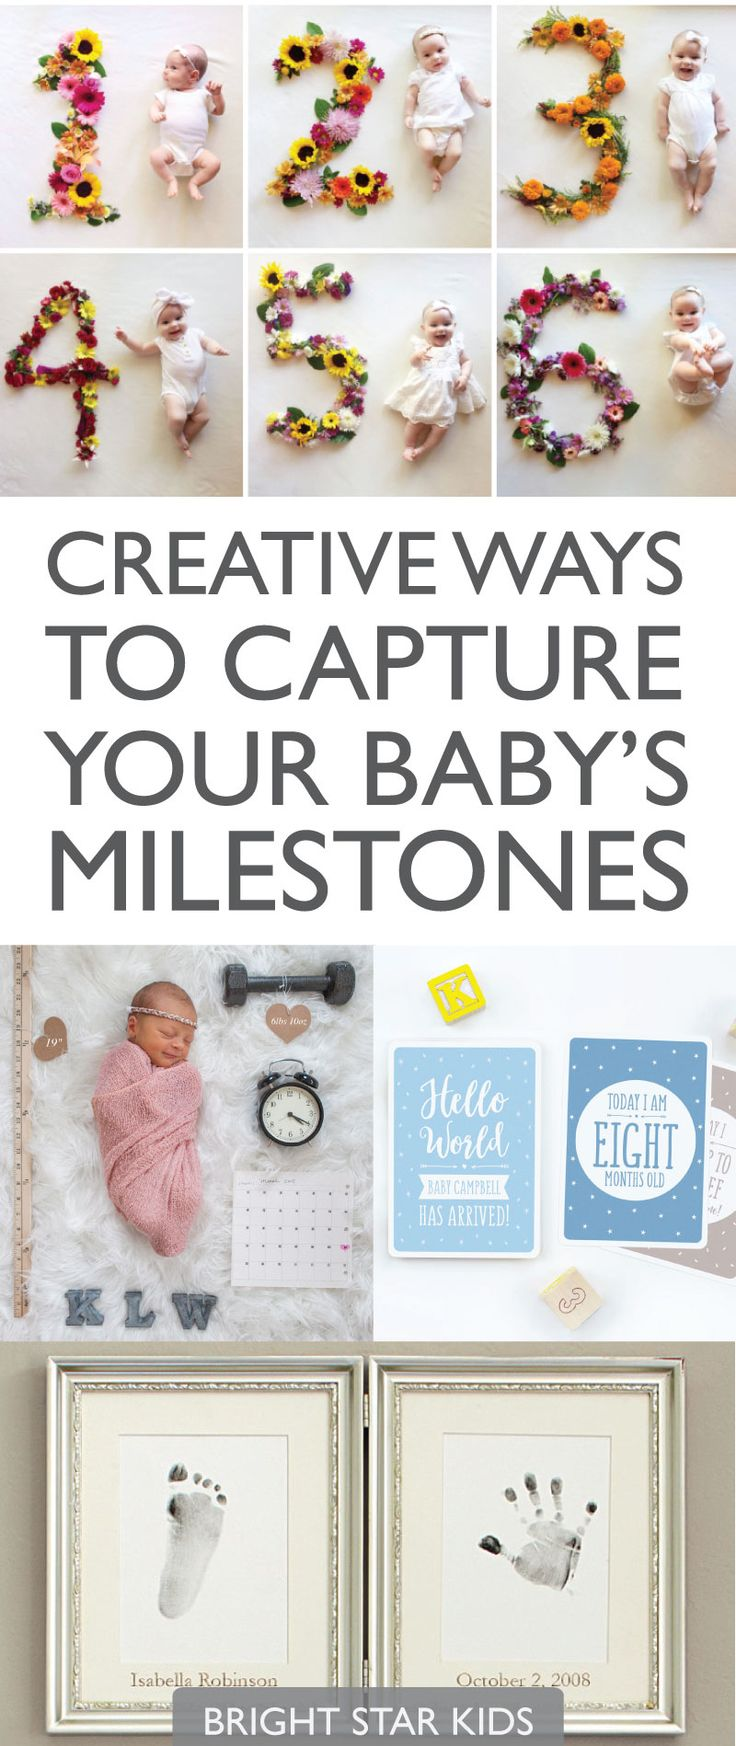 Creative ways to capture your baby's milestones // photoshoots and personalised keepsakes